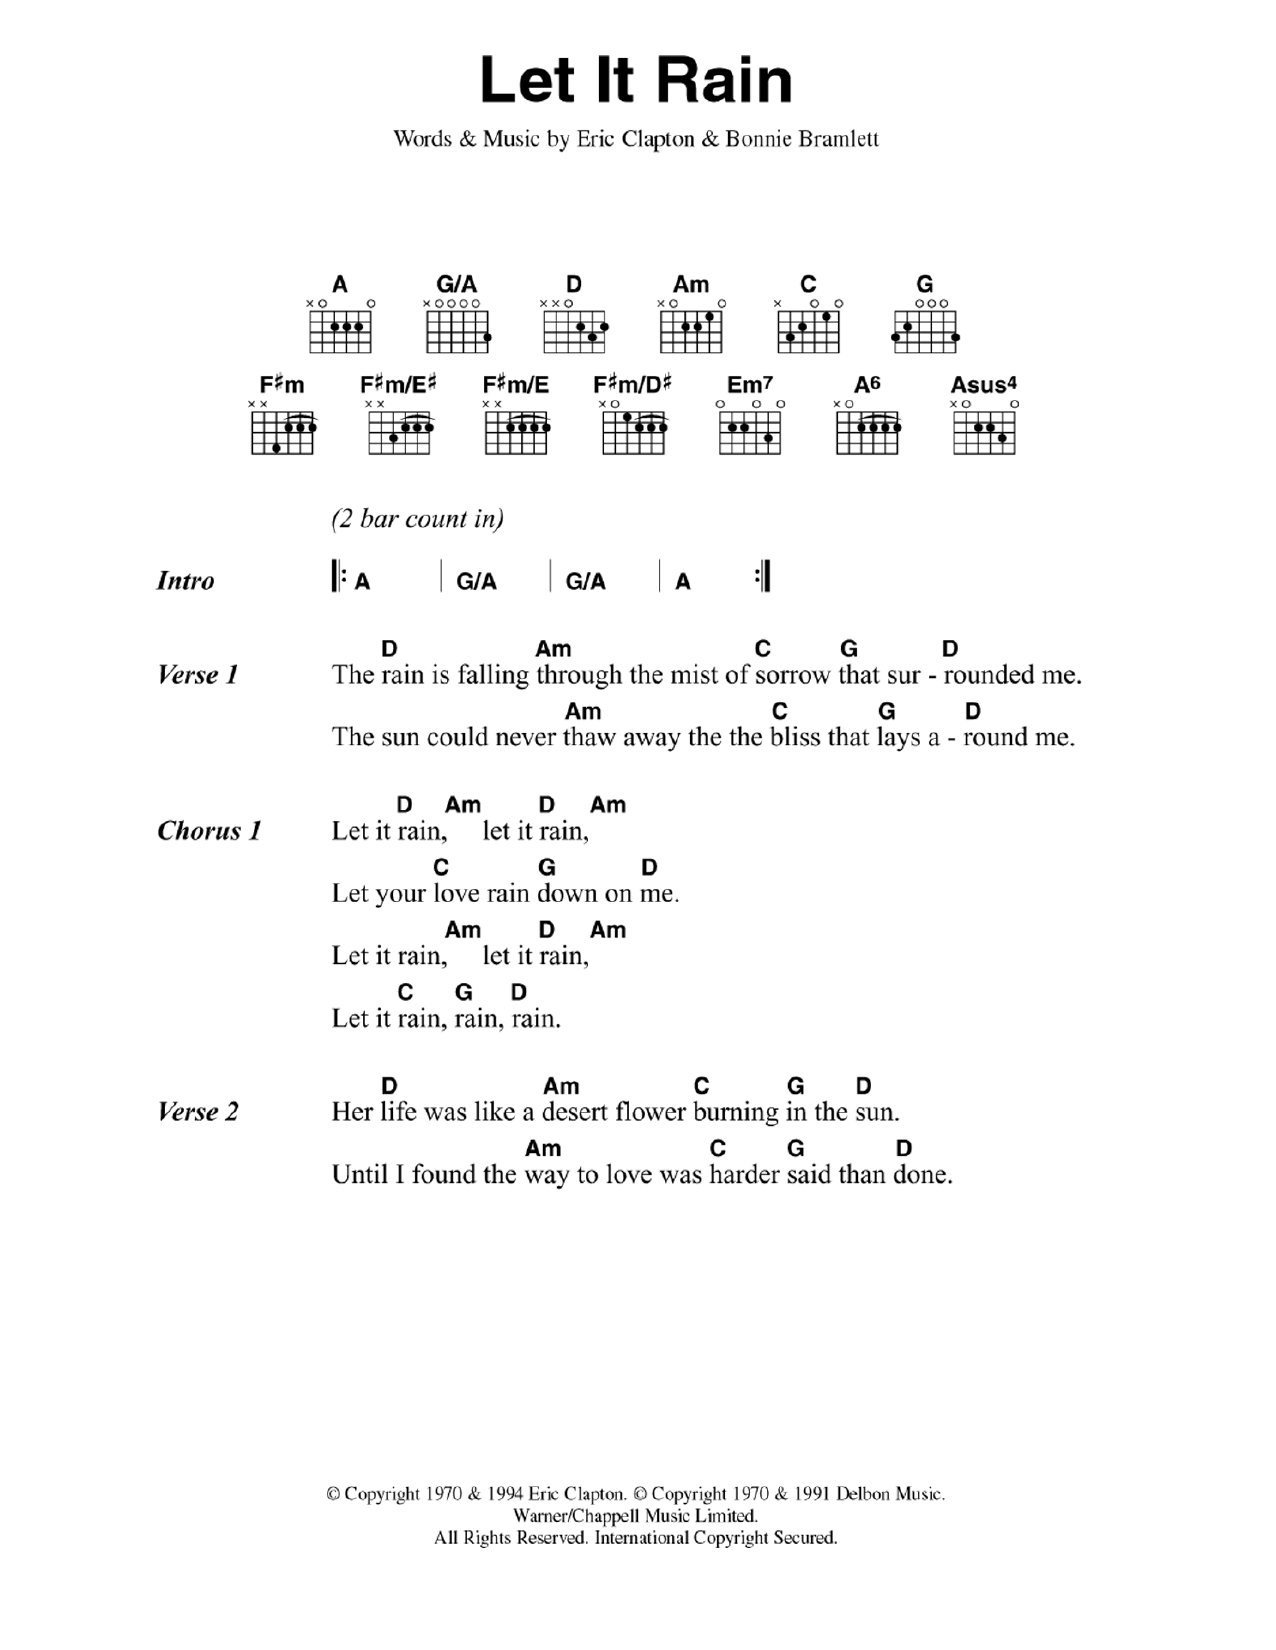 Let It Rain Sheet Music Eric Clapton Lyrics Chords